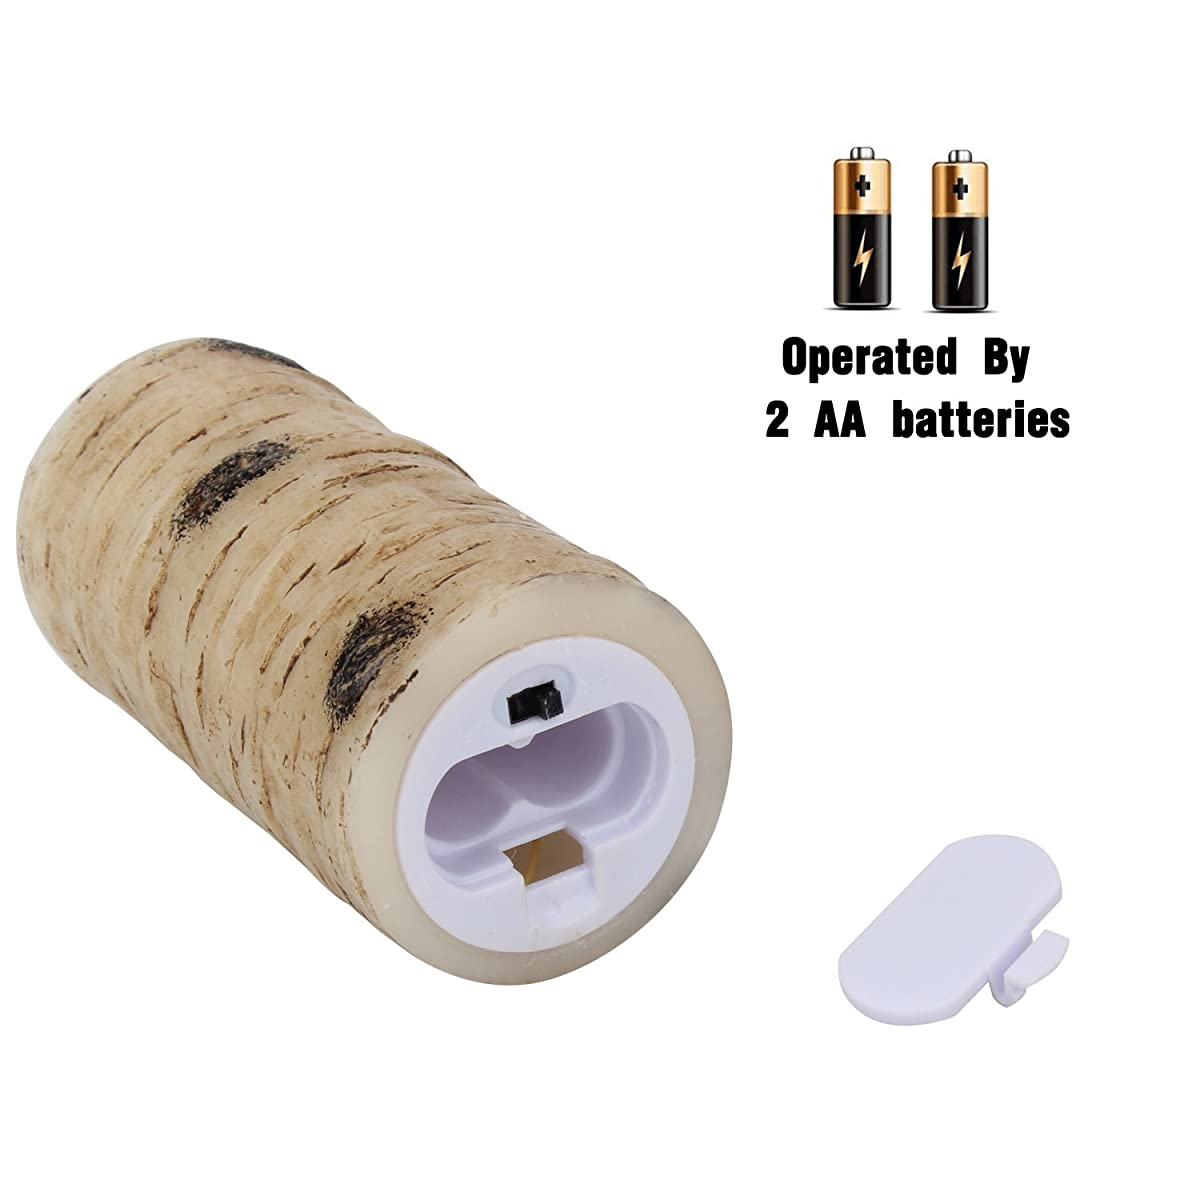 "Vinkor Flameless Candles Battery Operated Candles Birch Bark Effect 4"" 5"" 6"" 7"" 8"" 9"" Set of 9 Ivory Real Wax Pillar LED Candles with Real Wax Pillar With 10-key Remote Control 2/4/6/ 8 Hours Timer"